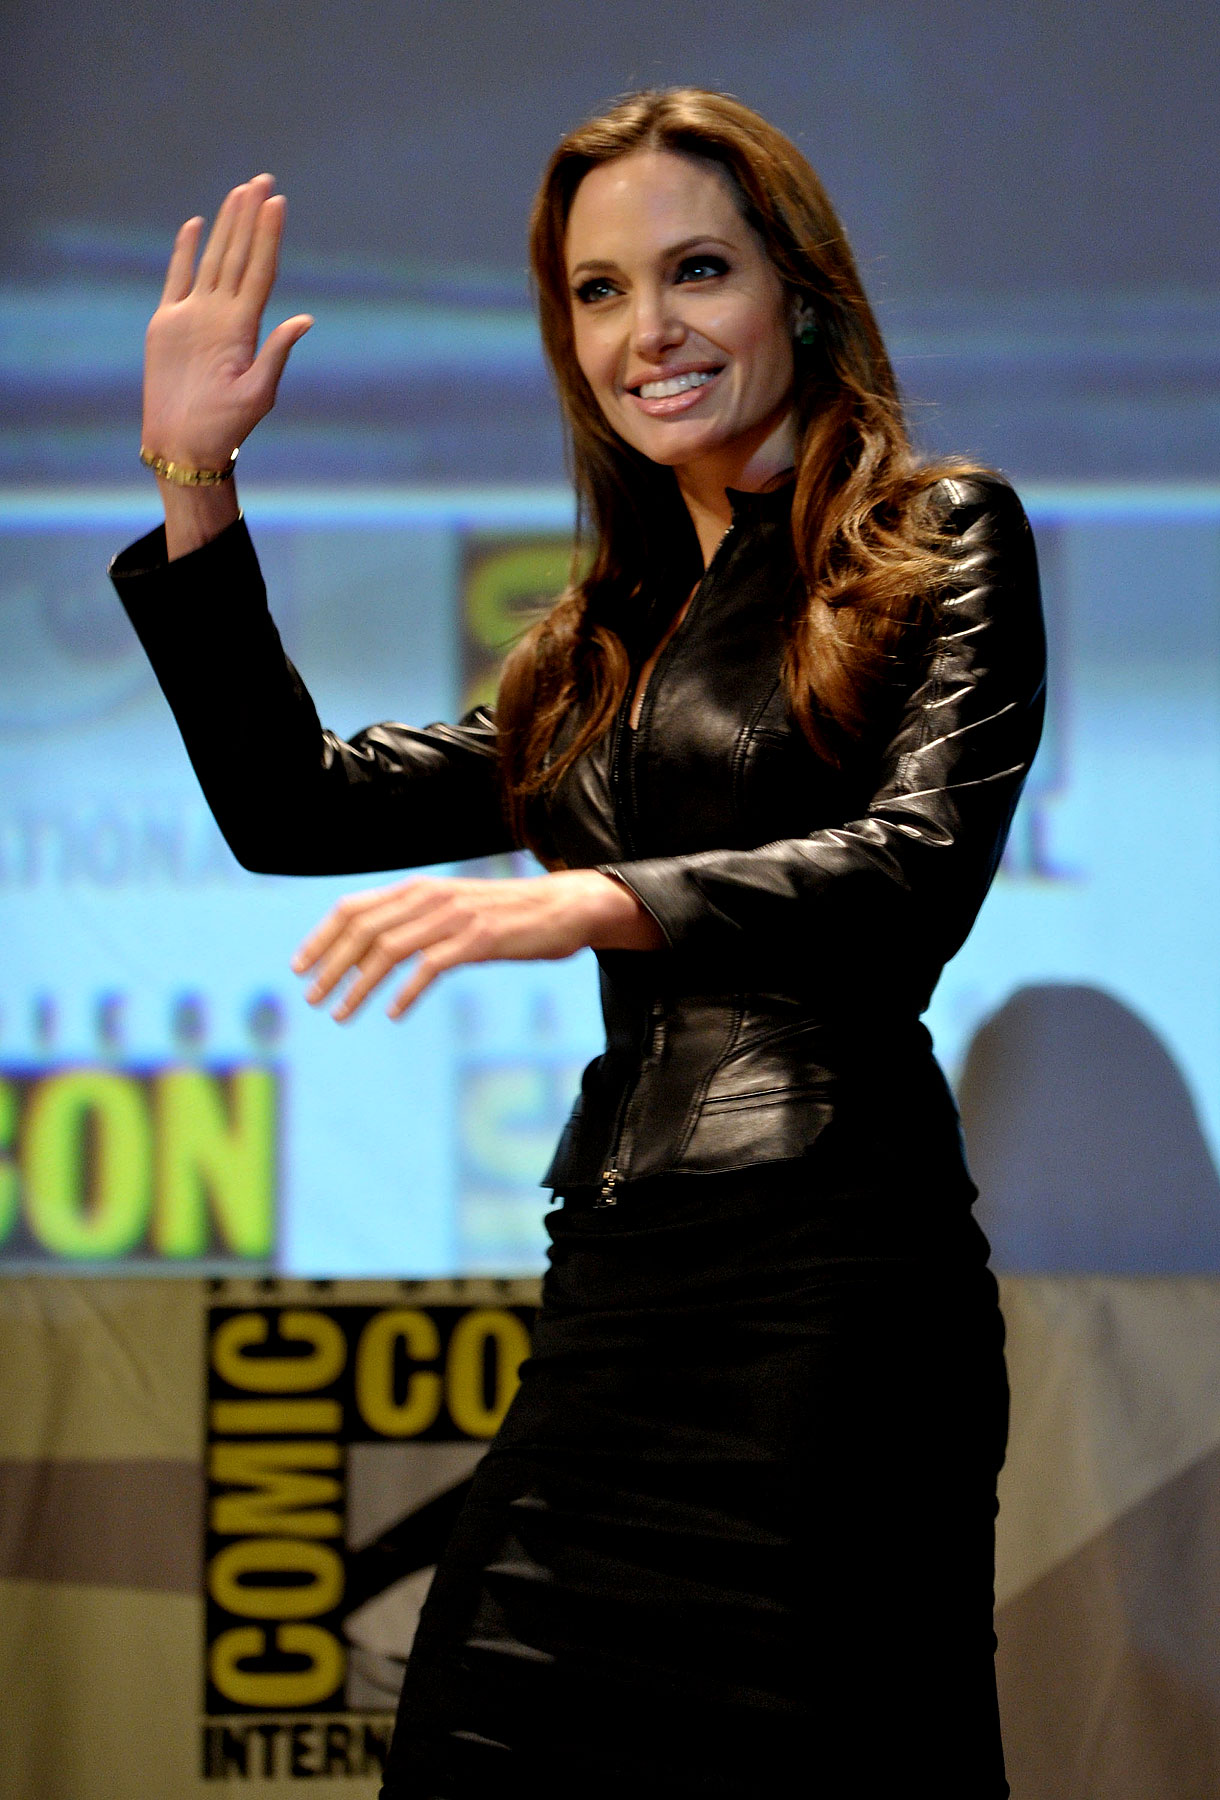 Angelina Jolie Is Back in Black at Comic-Con (PHOTOS)